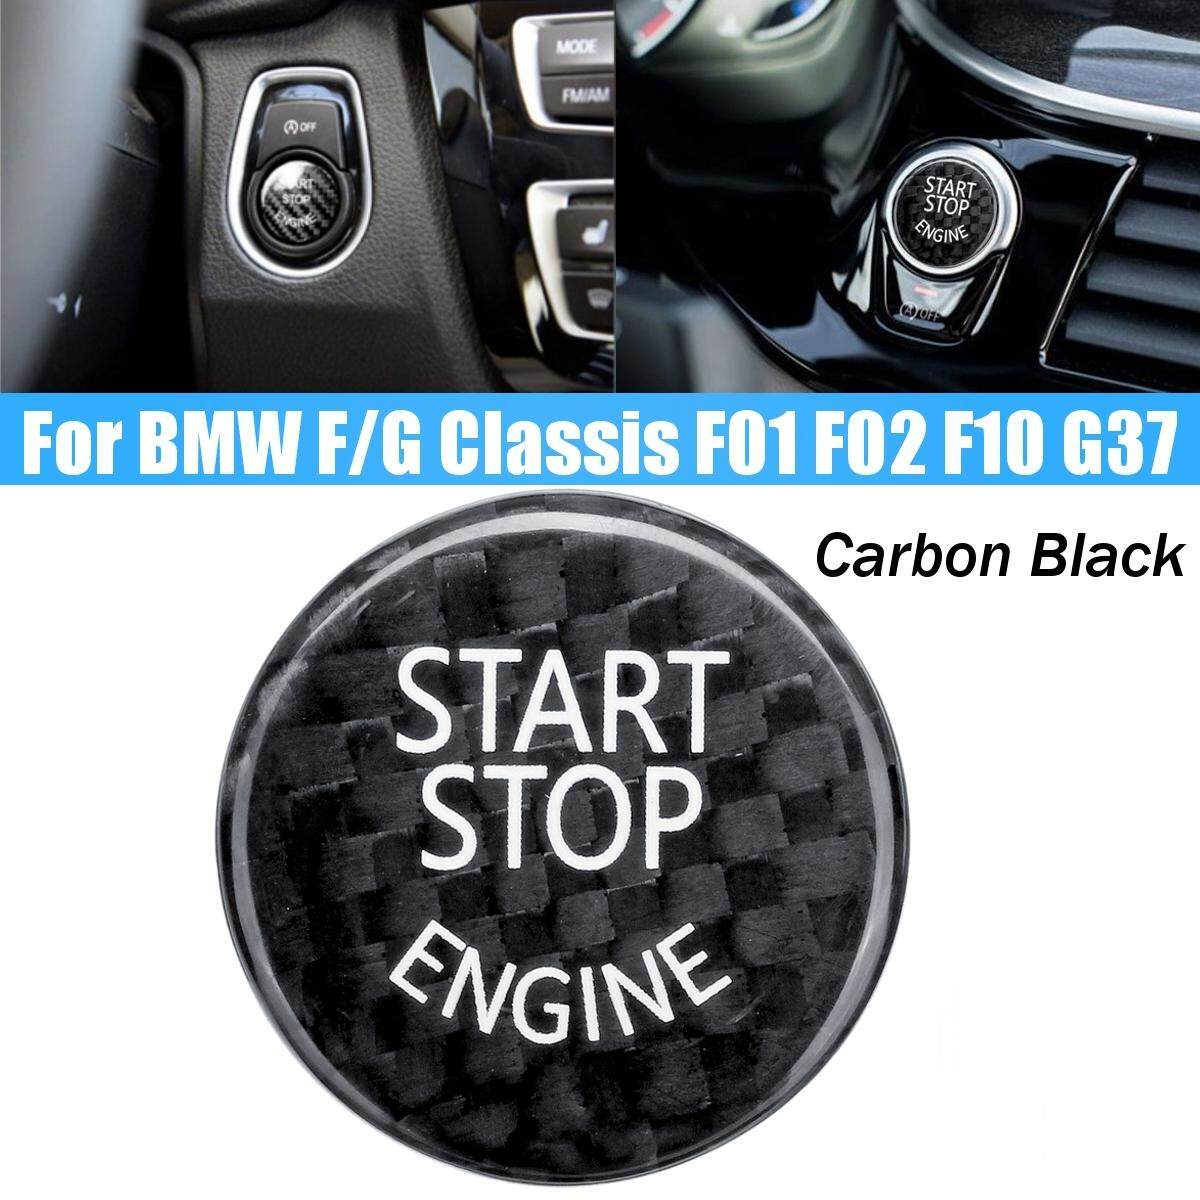 【free Shipping + Flash Deal】start Stop Engine Button Carbon Black Cover For Bmw F/g Classis F01 F02 F10 G37 By Audew.